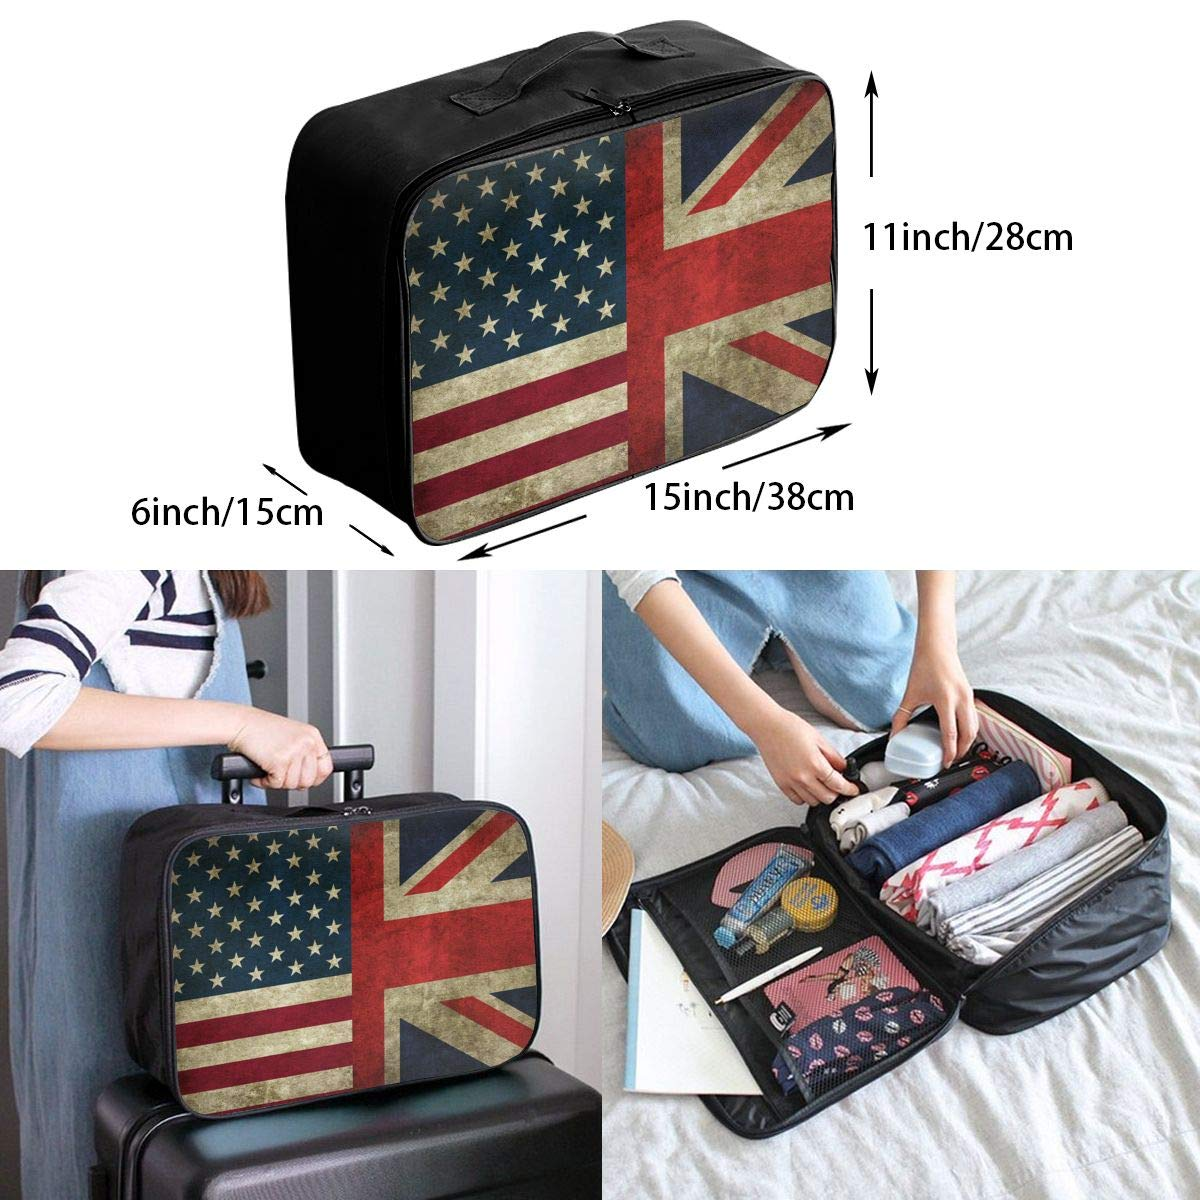 British Flag And American Flag Travel Fashion Lightweight Large Capacity Portable Waterproof Foldable Storage Carry Luggage Bag Luggage Duffle Tote Bag Hanging Travel Toiletry Bag Travel Makeup Bag